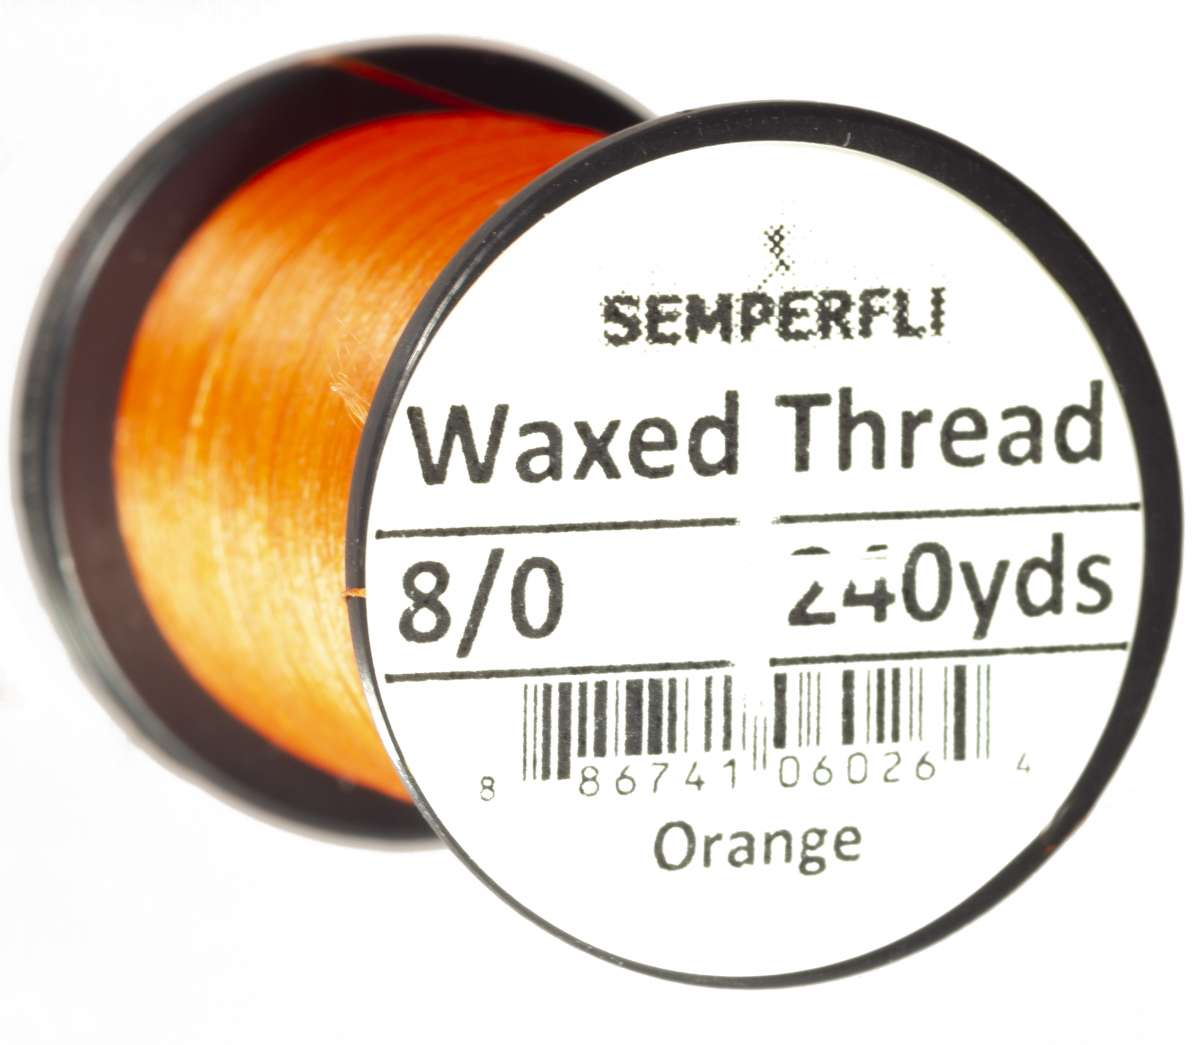 8/0 Classic Waxed Thread Orange Sem-0400-1845